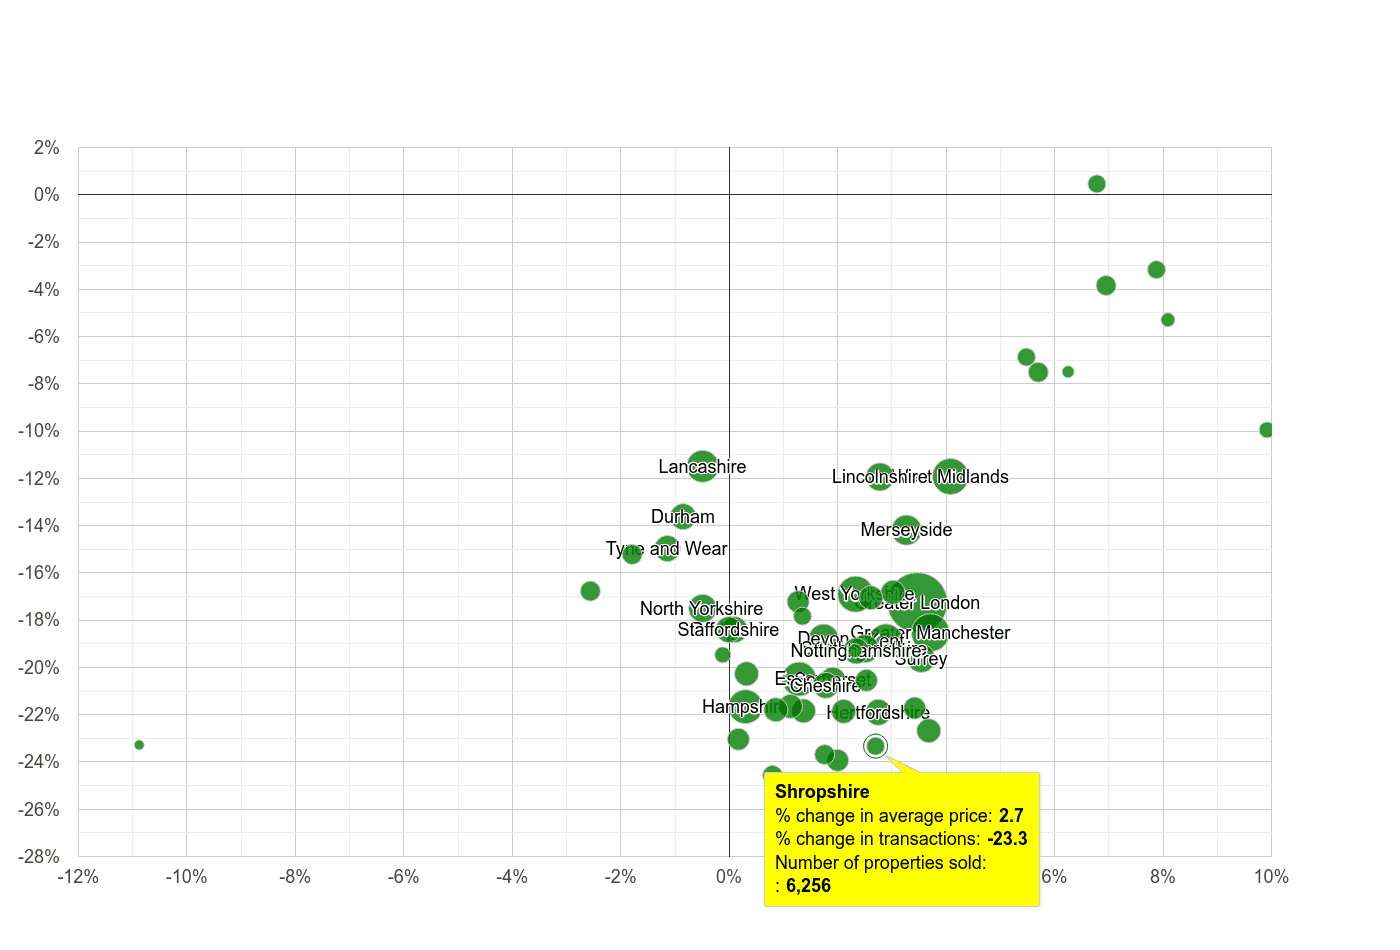 Shropshire property price and sales volume change relative to other counties